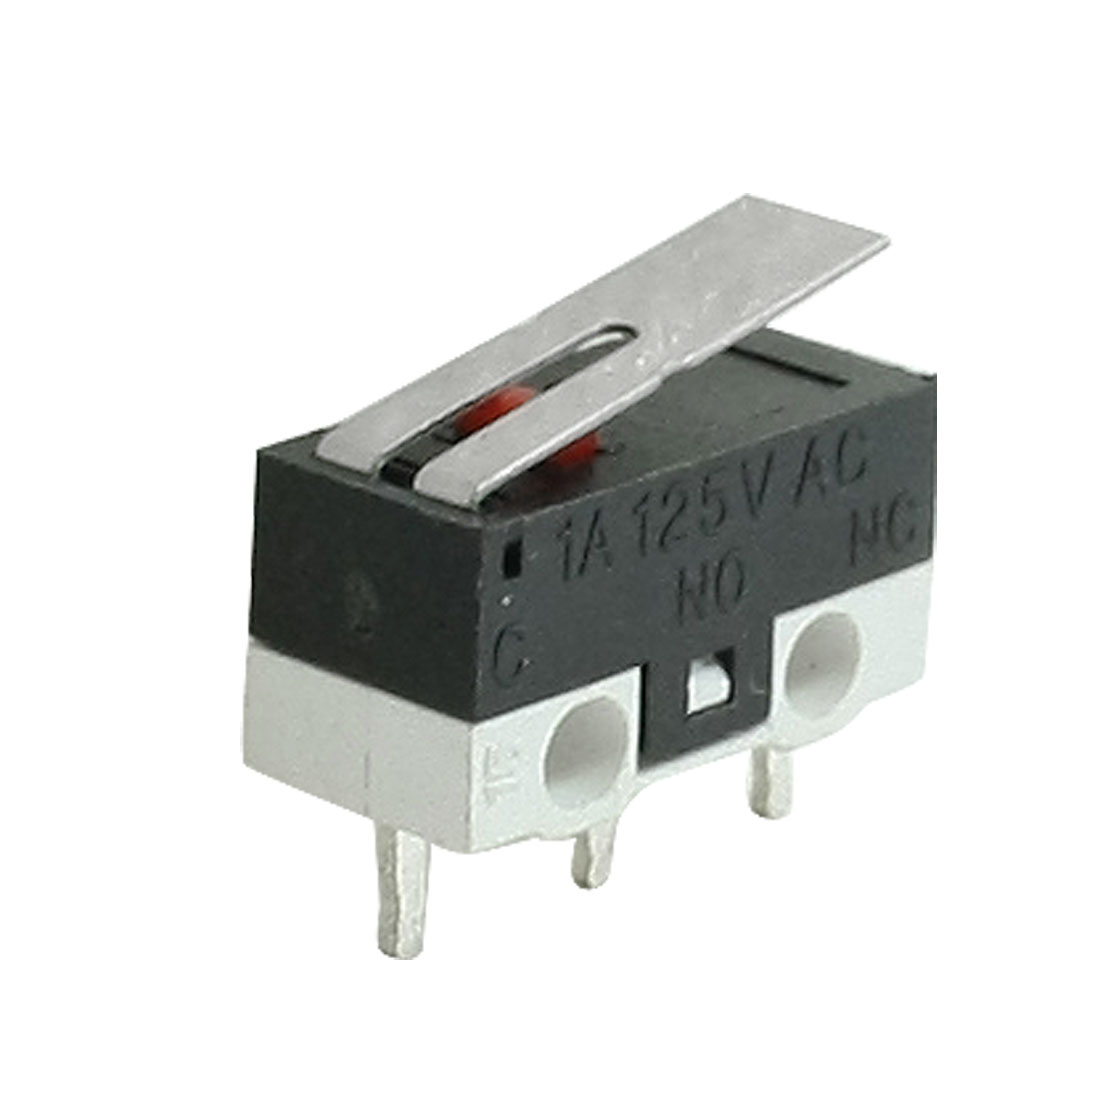 2 Pieces AC 125V 1A SPDT Low-Force Lever Momentary Micro Switch